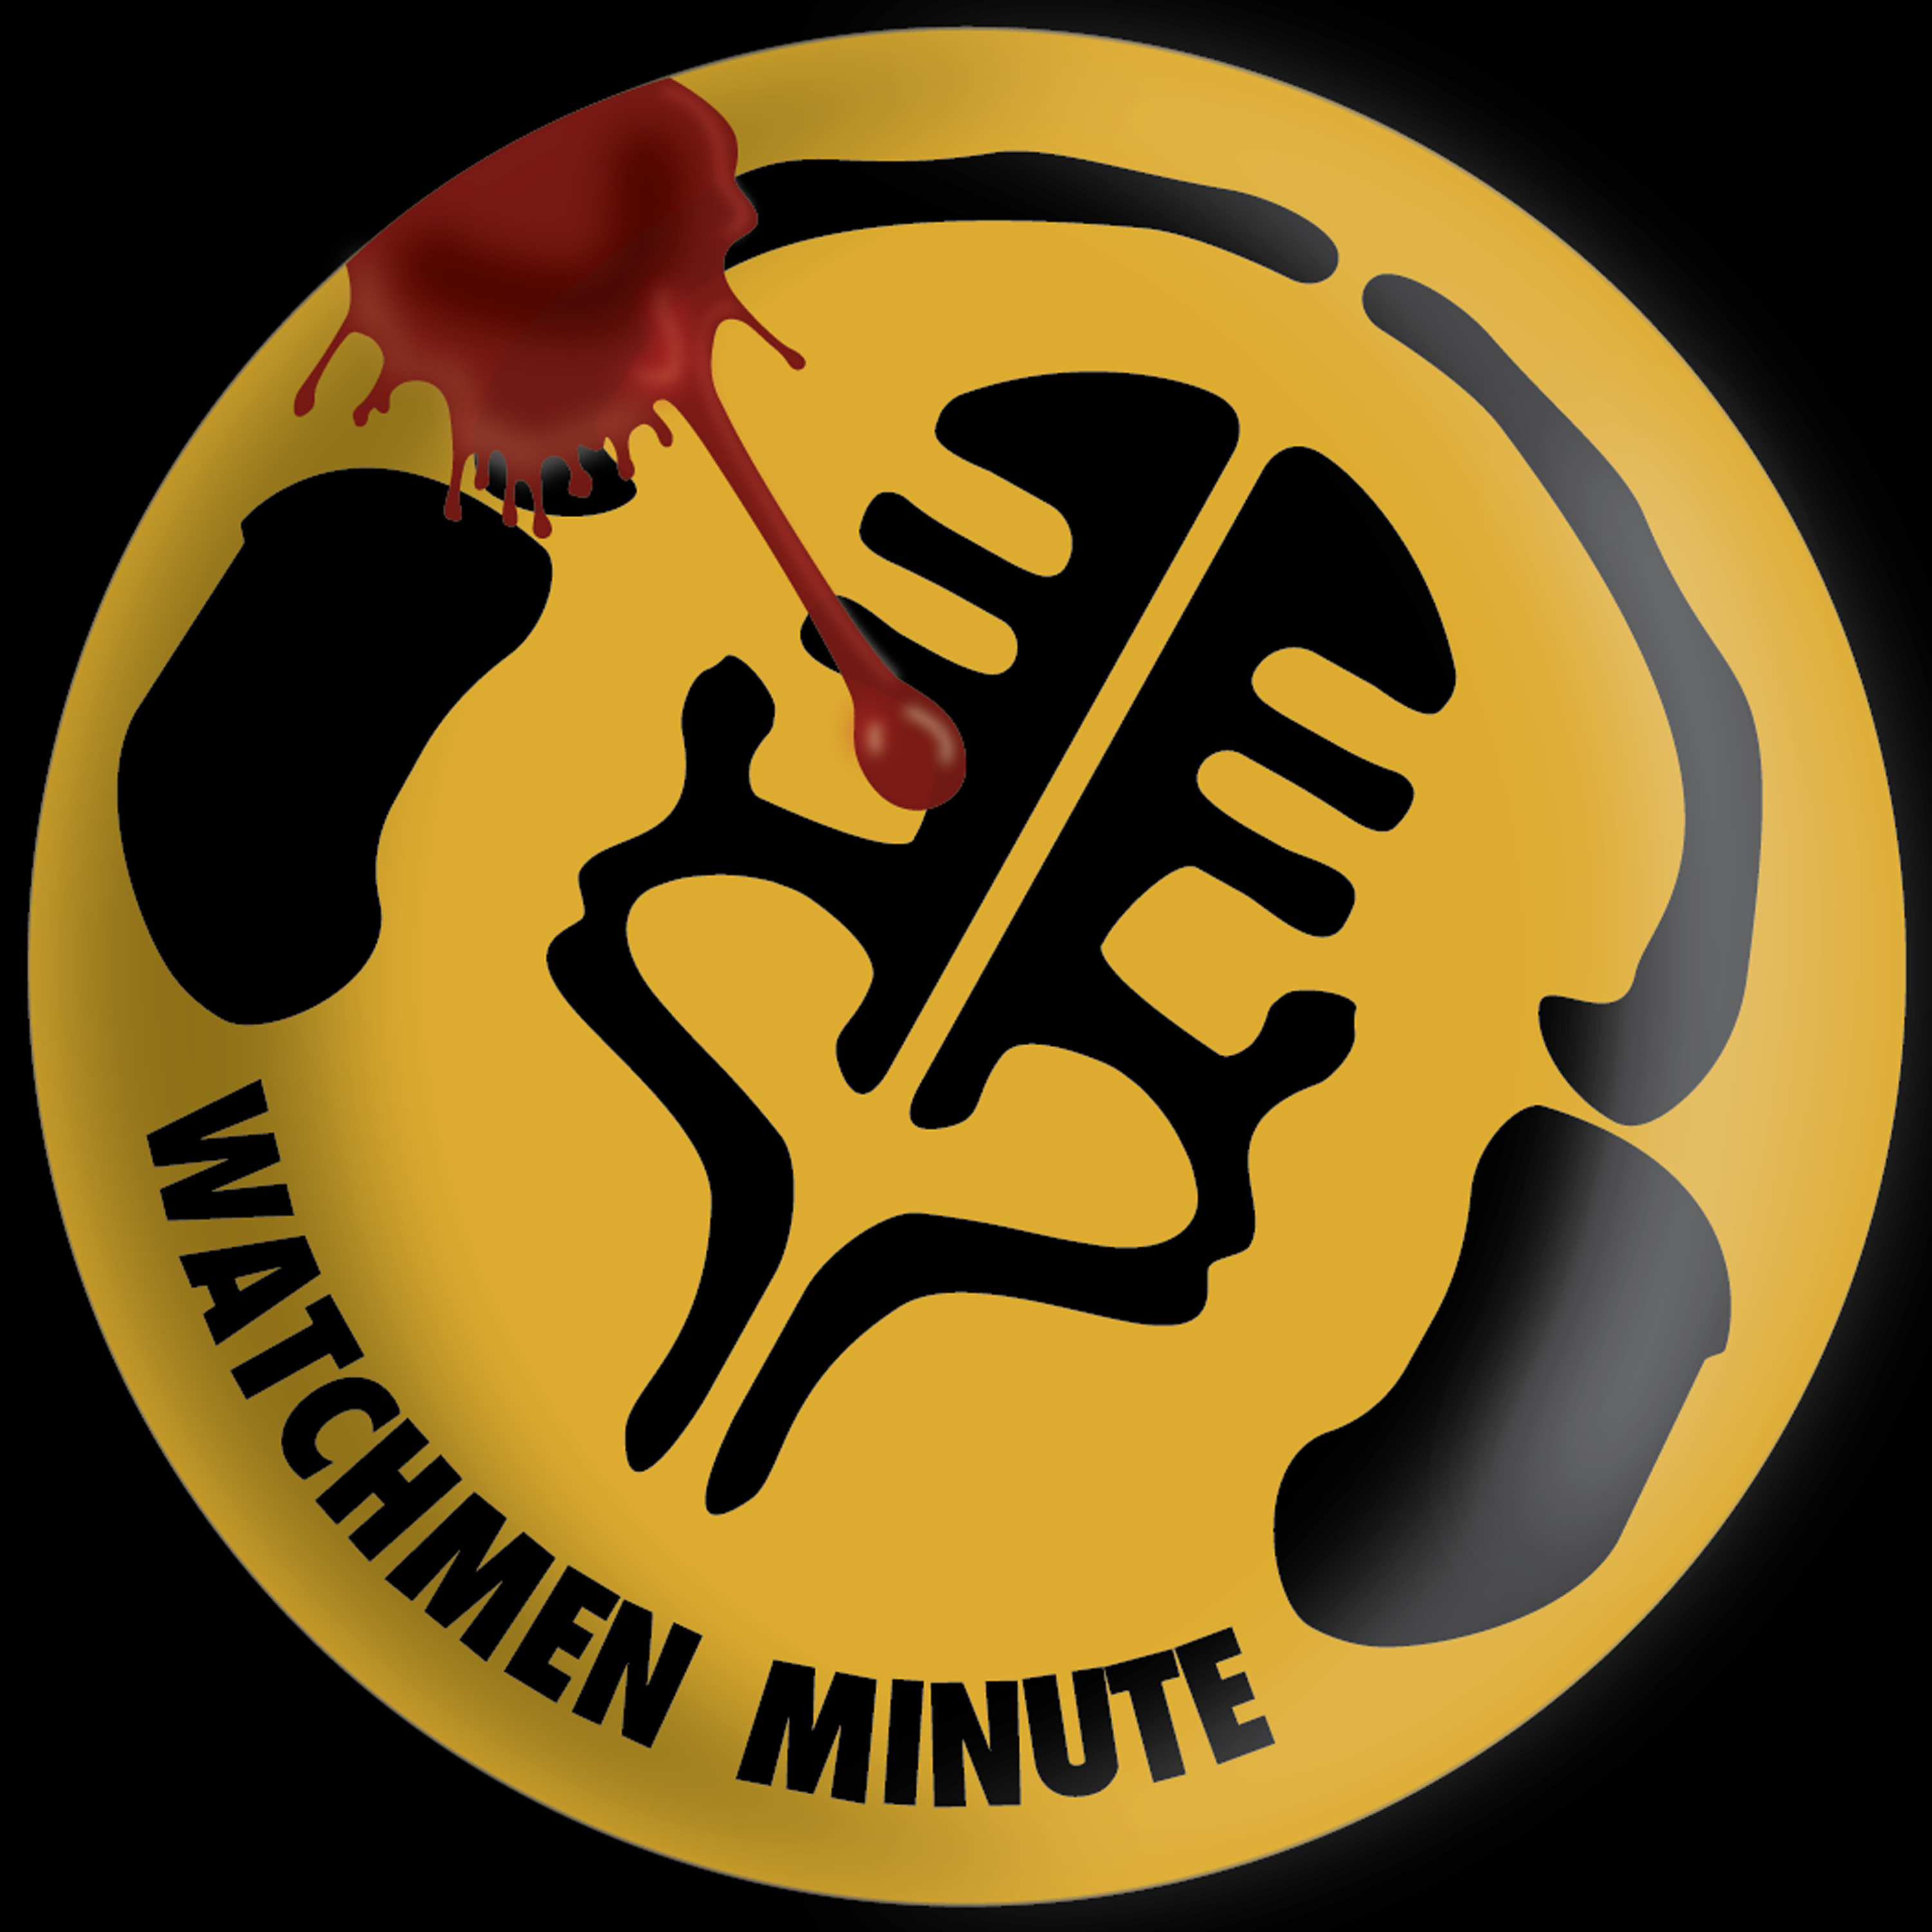 Artwork for Watchmen Minute 001 - Black and Yellow